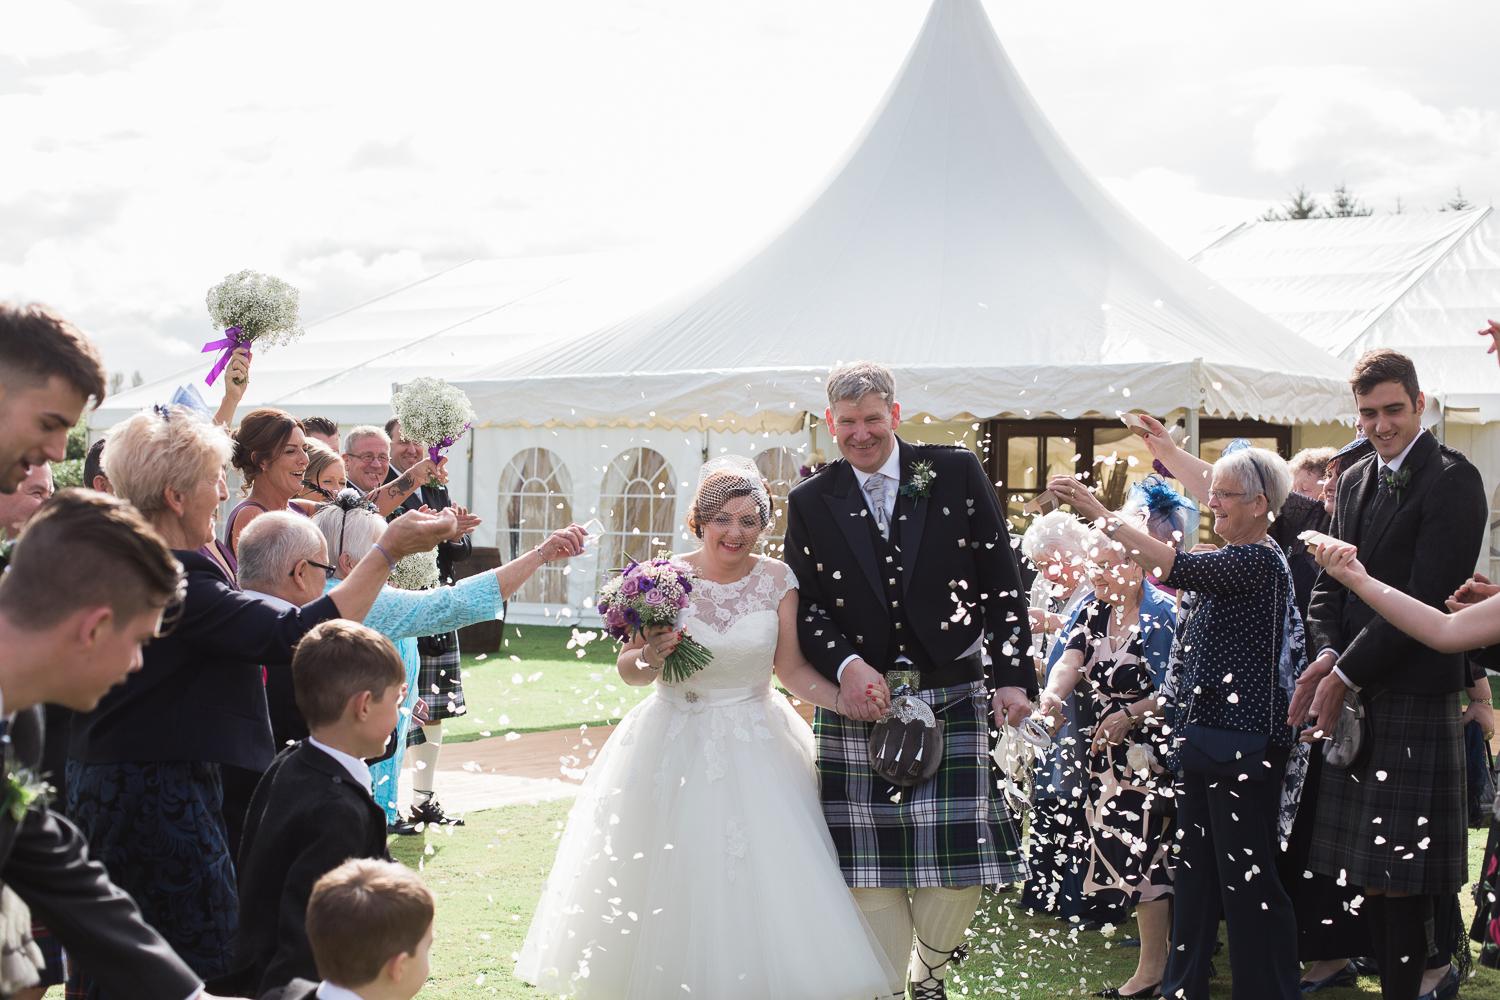 wedding photographer Scotland, wedding photographer Aberdeenshire, Aberdeenshire wedding photography